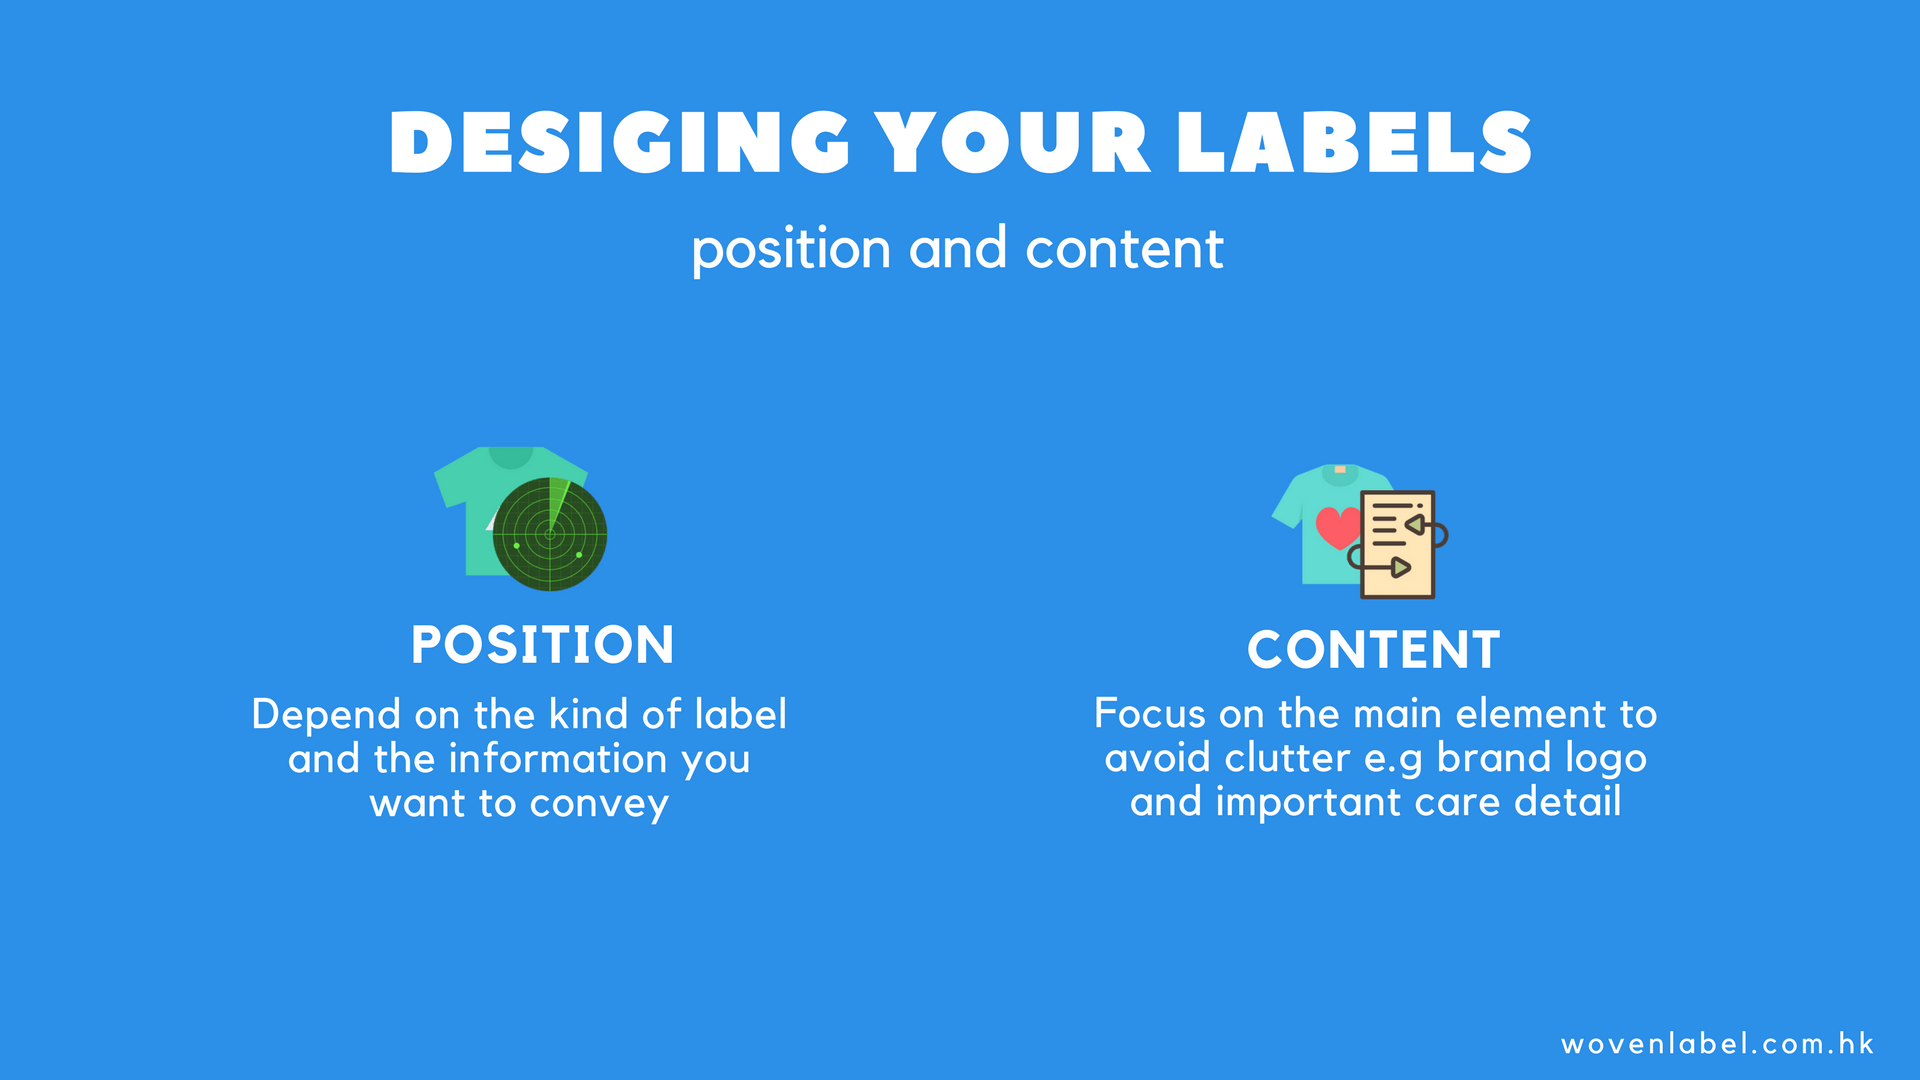 1bc5bf7d6 Now we have explained the manufacturing options in terms of types of labels,  however your design process is just as important to us!